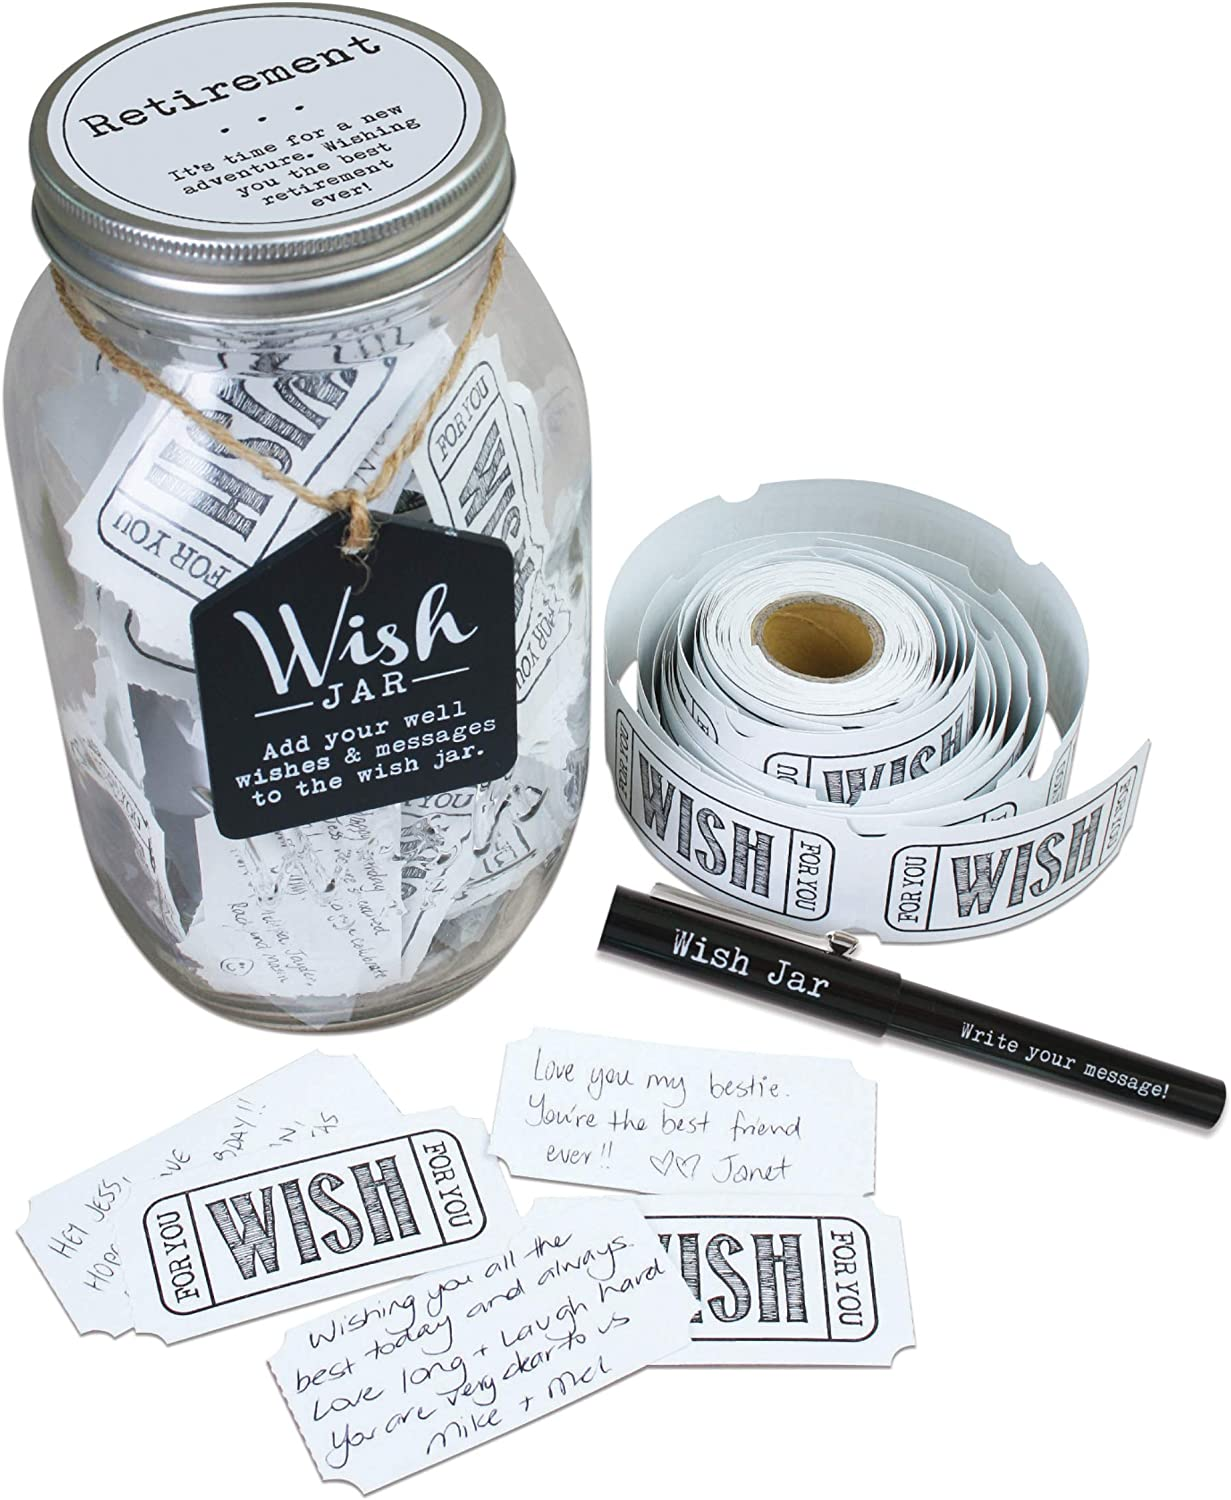 Top Shelf Retirement Wish Jar Max 49% OFF With Pen and Dealing full price reduction 100 Decorat Tickets